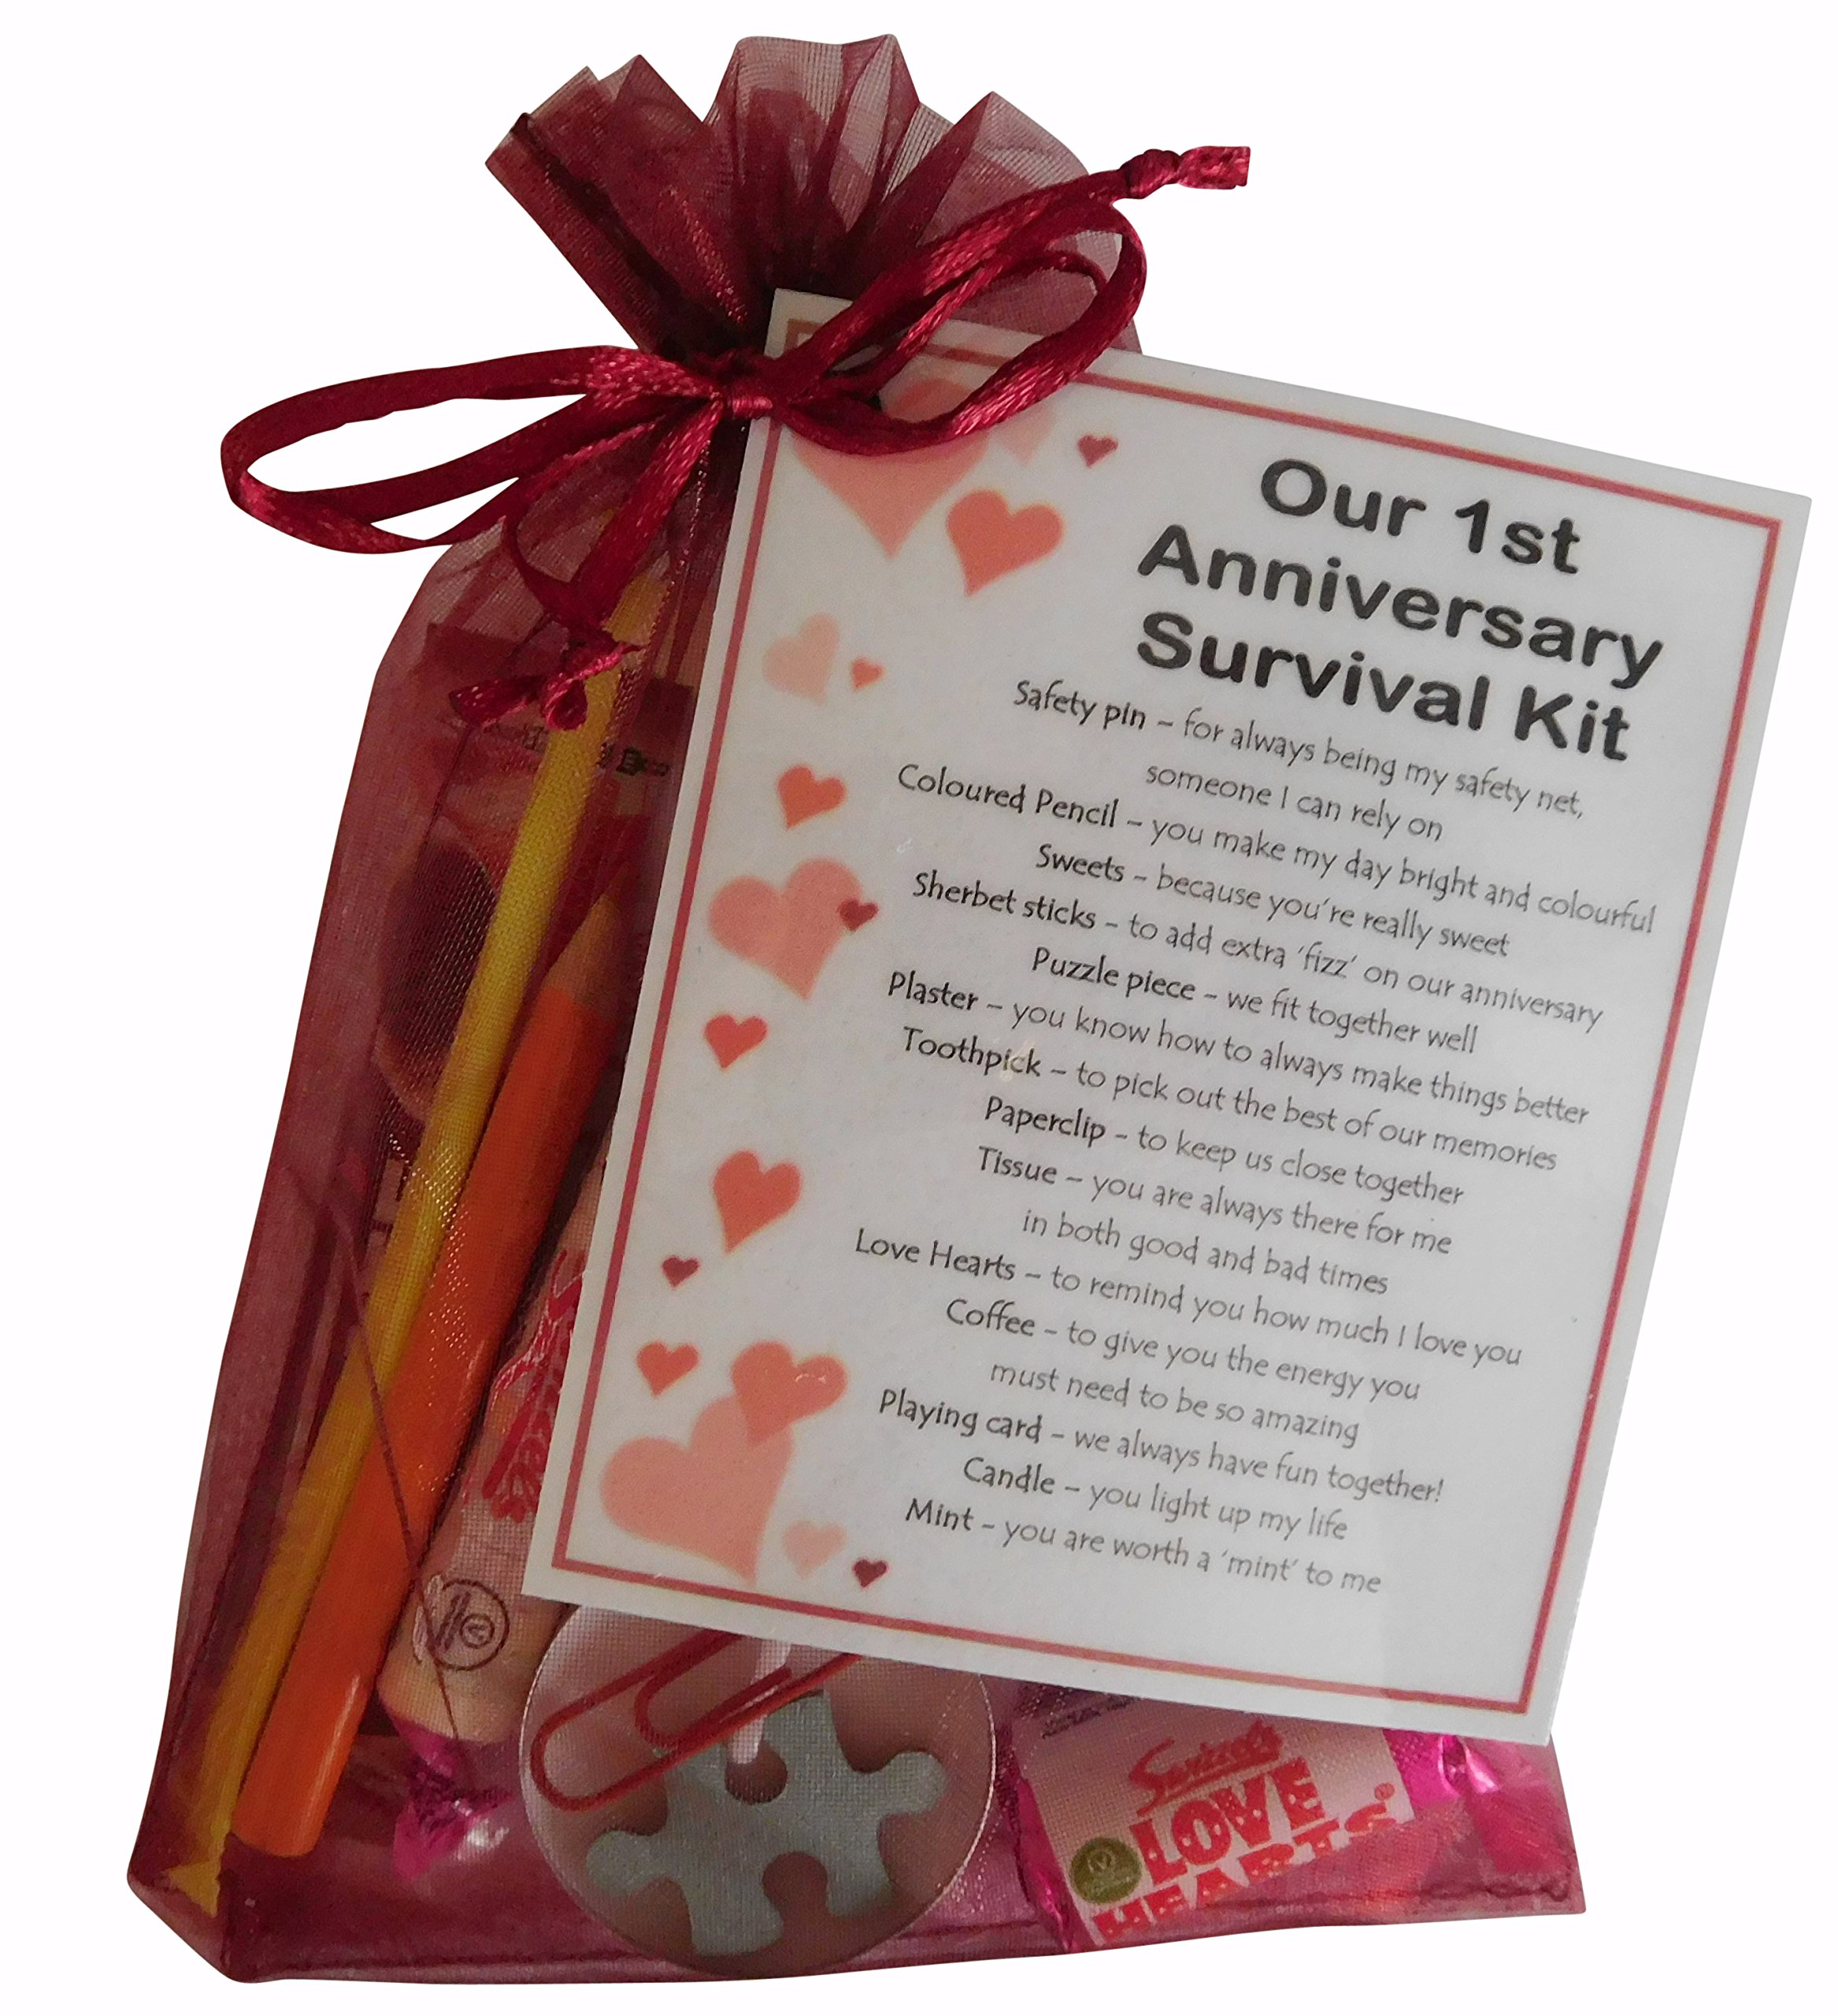 Smile Gifts Uk 1st Anniversary Survival Kit Gift Great Novelty Present For First Anniversary Or Wedding Anniversary For Boyfriend Girlfriend Husband Wife Buy Online In Pakistan At Desertcart